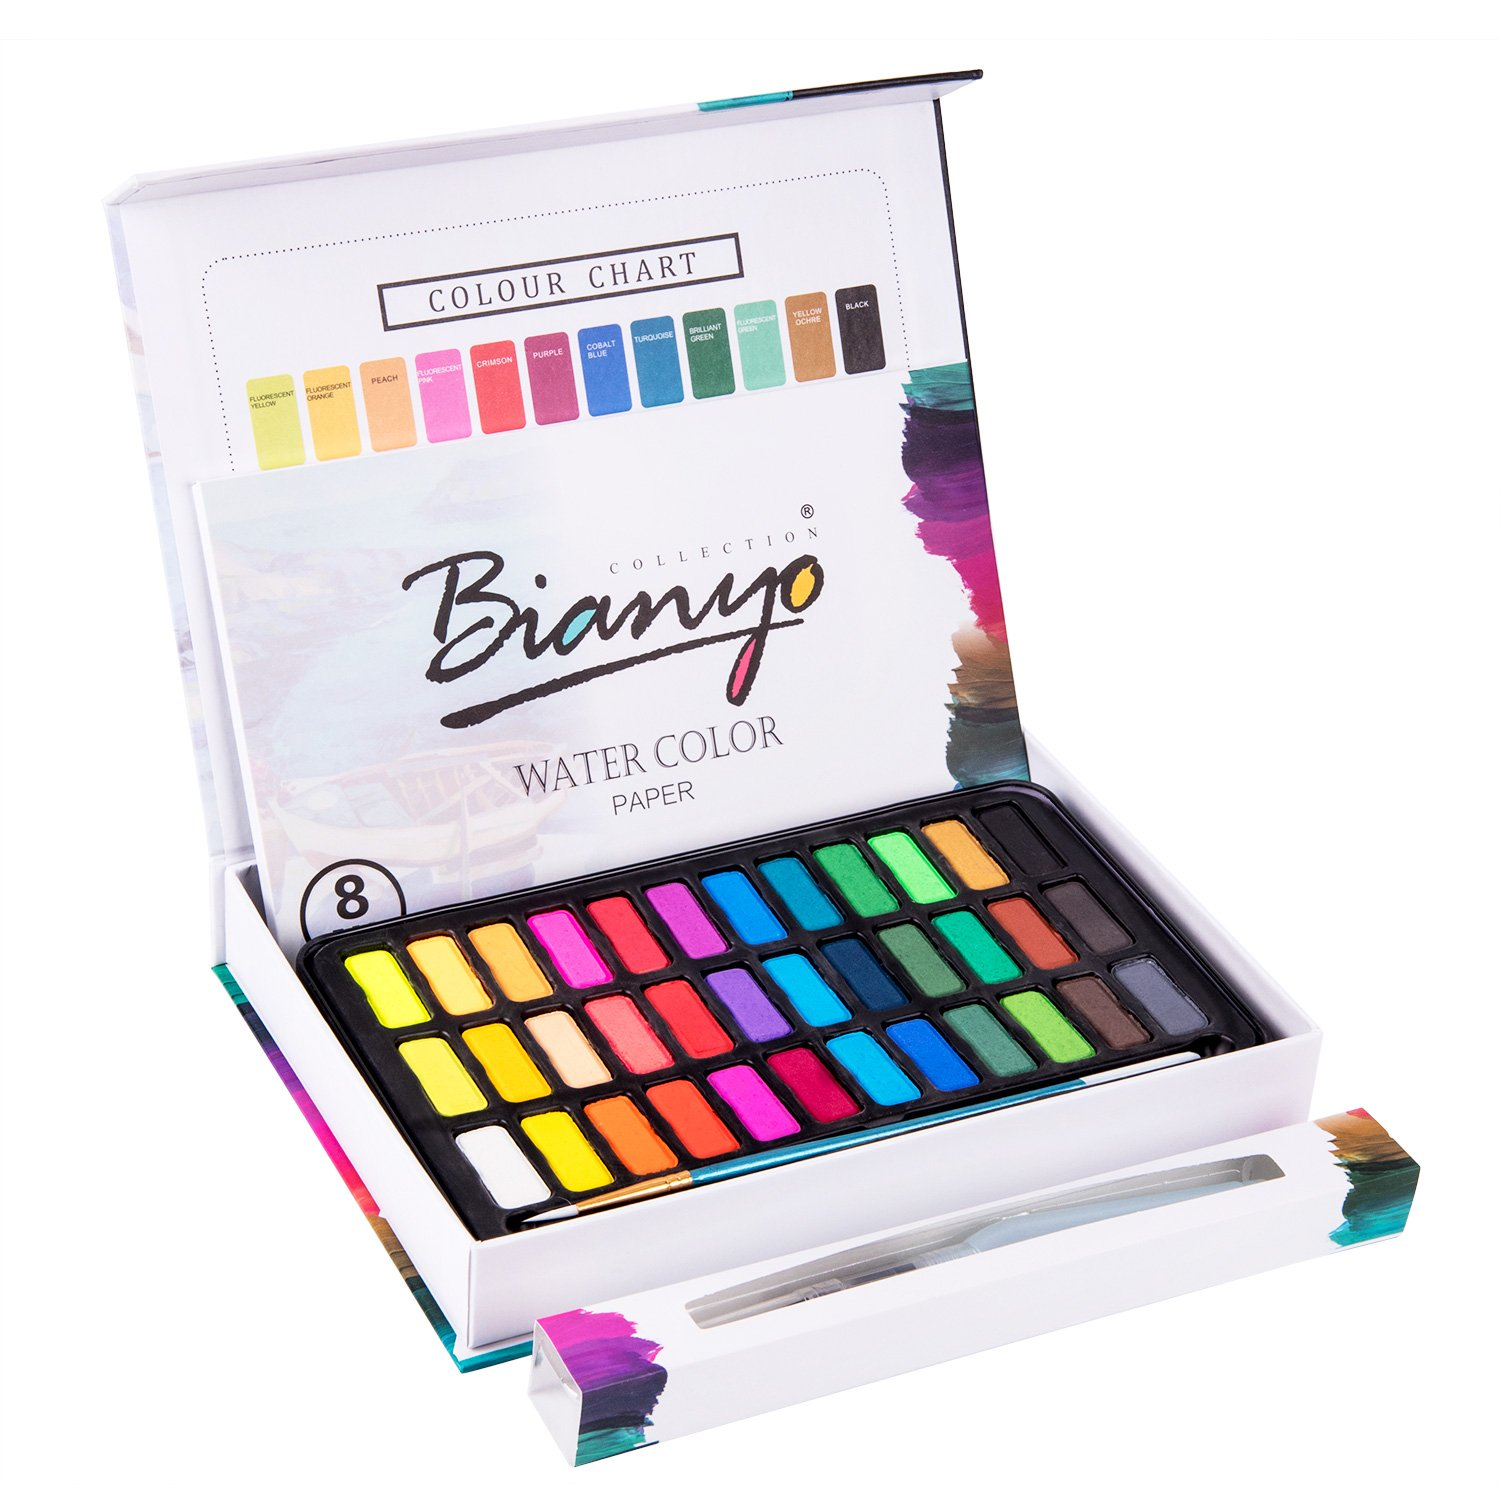 Bianyo Watercolor Paint- Professional Art Water Colors Set with Paper Brush Palette for Kids Adults Painting, Coloring, Gift Travel Case